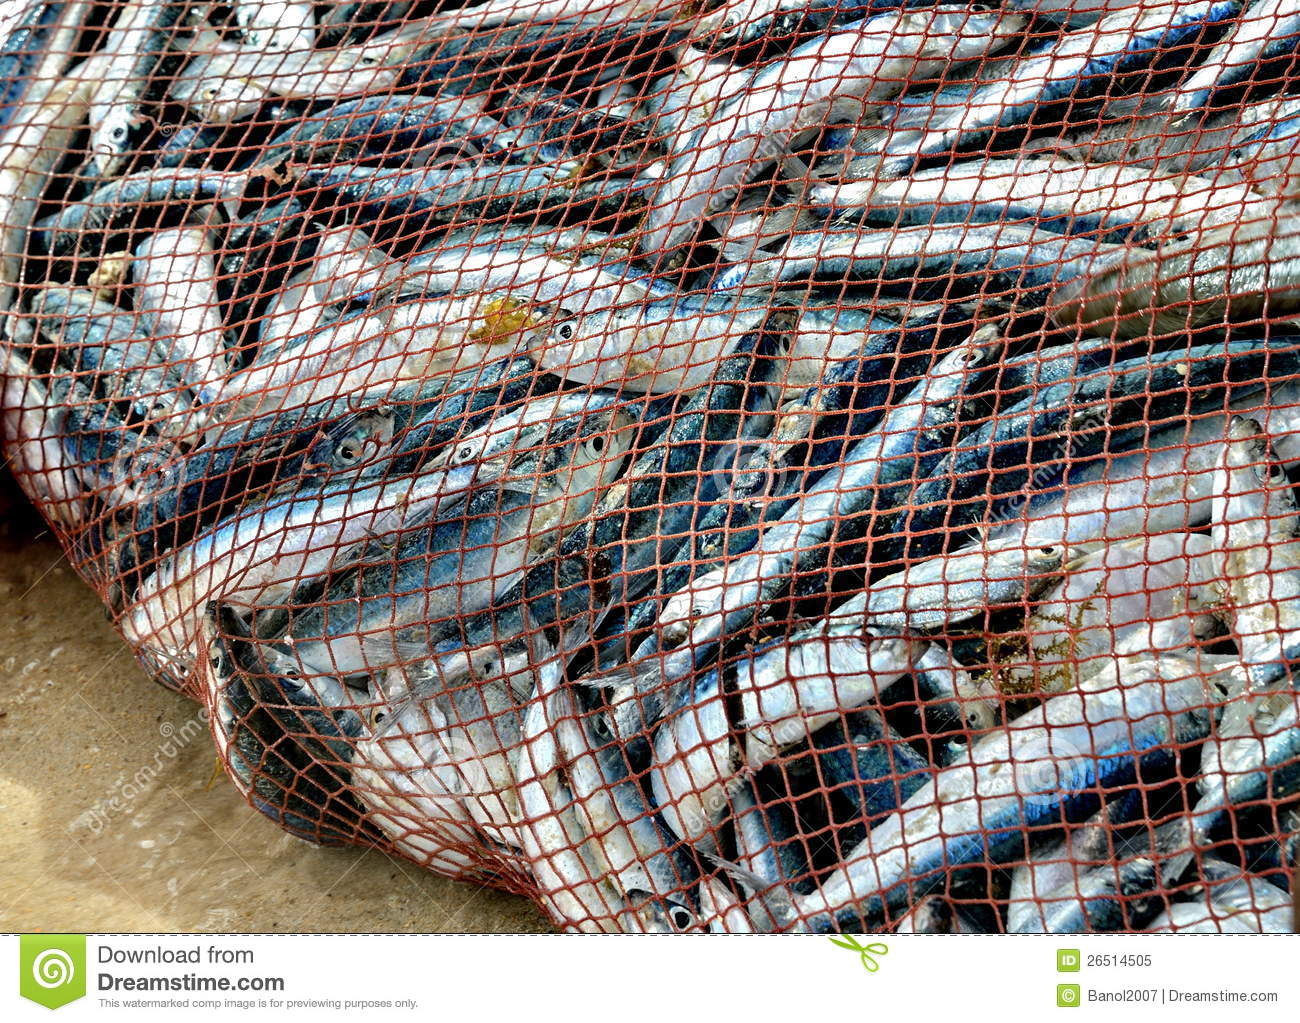 Net is full of fish nice catch stock image image of for Fish catching net